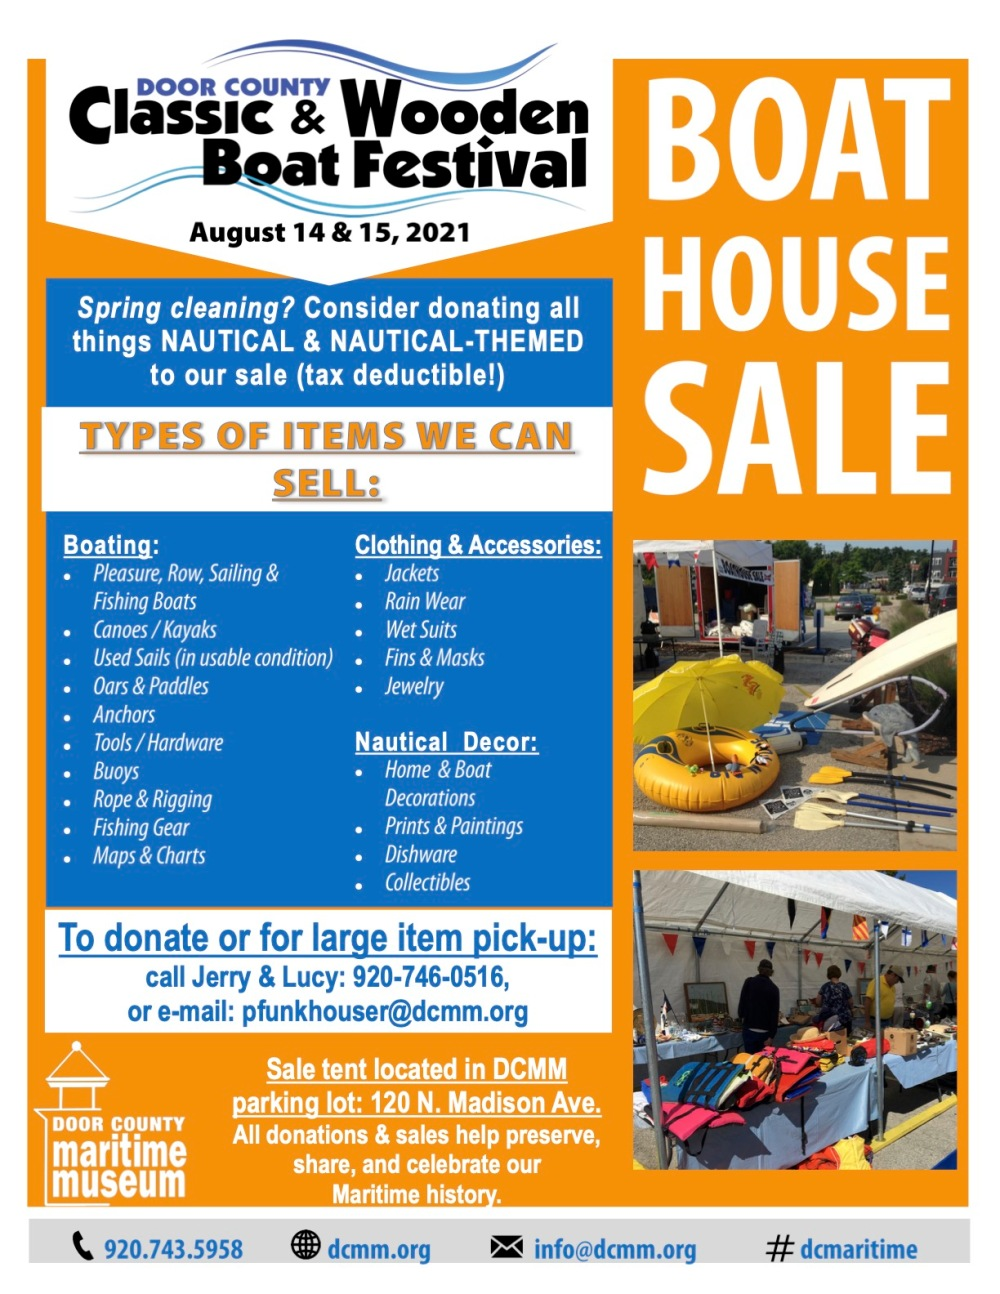 2021 Boat House Sale Poster jpeg